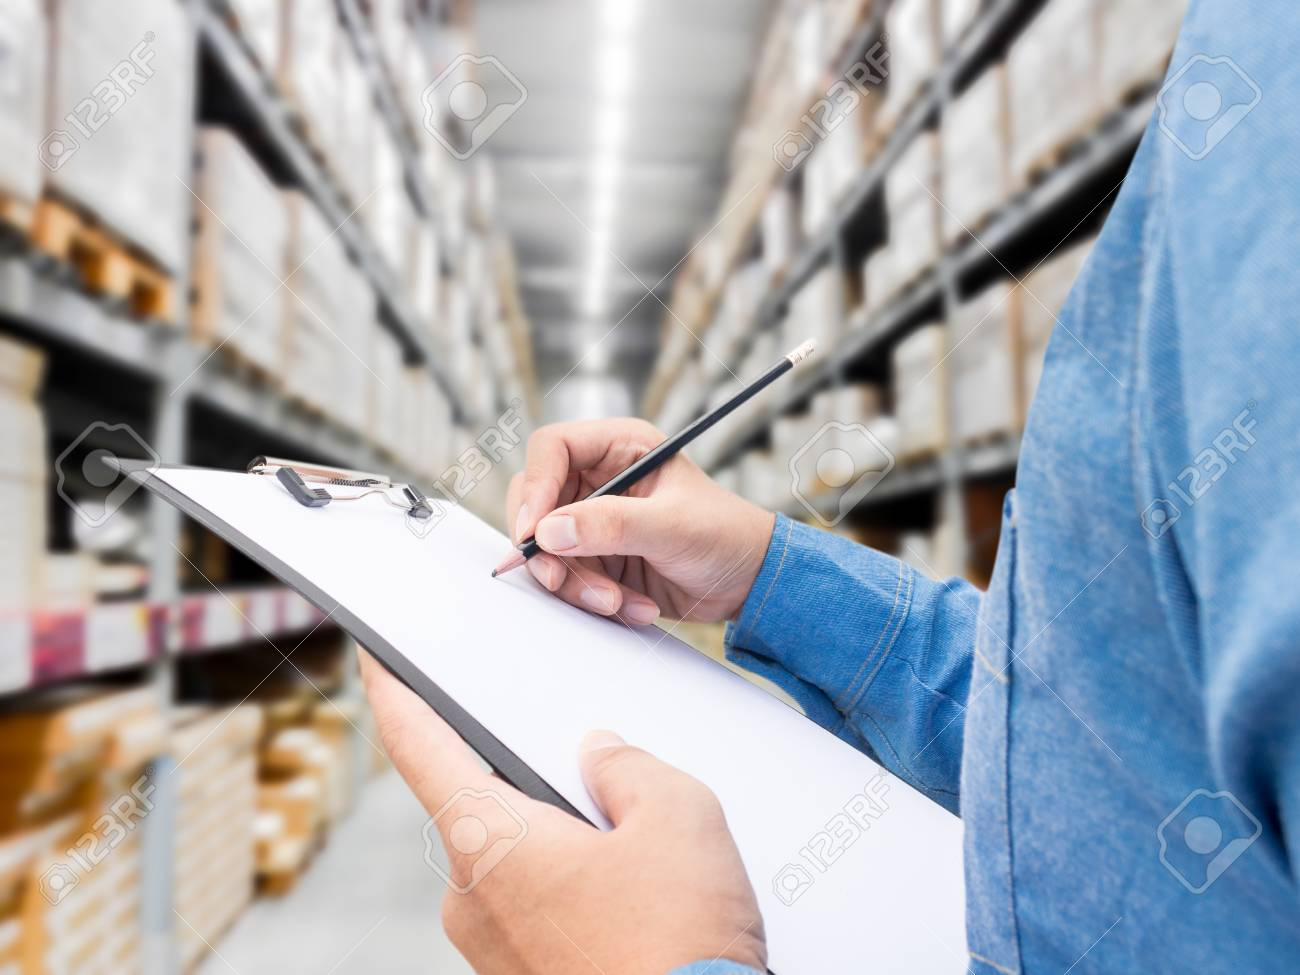 Man checking list on clipboard in a warehouse - 88438320